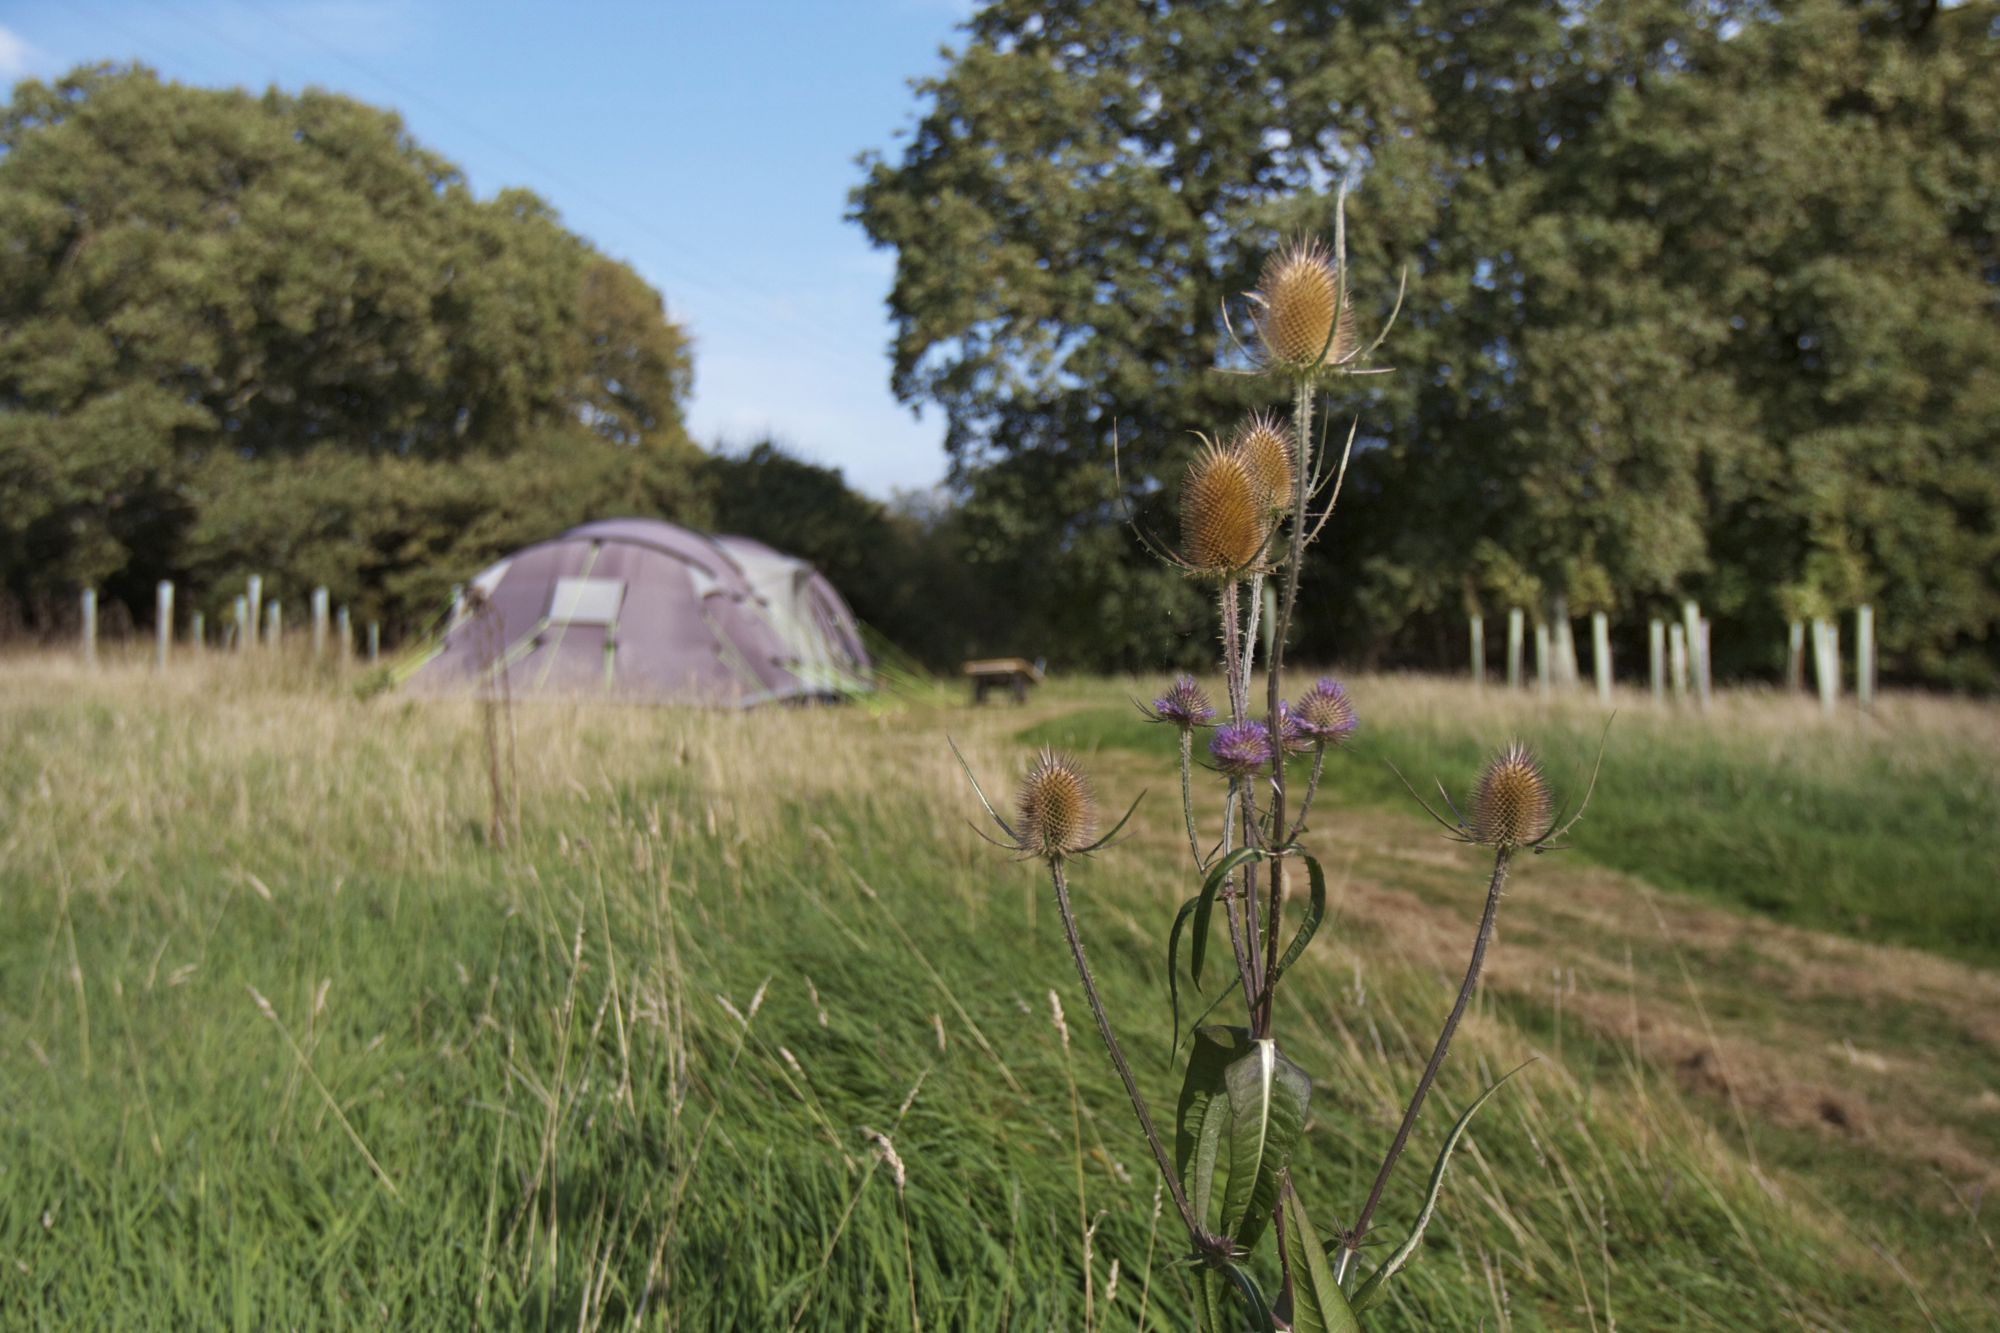 UK Campsites - Campgrounds in England, Scotland and Wales